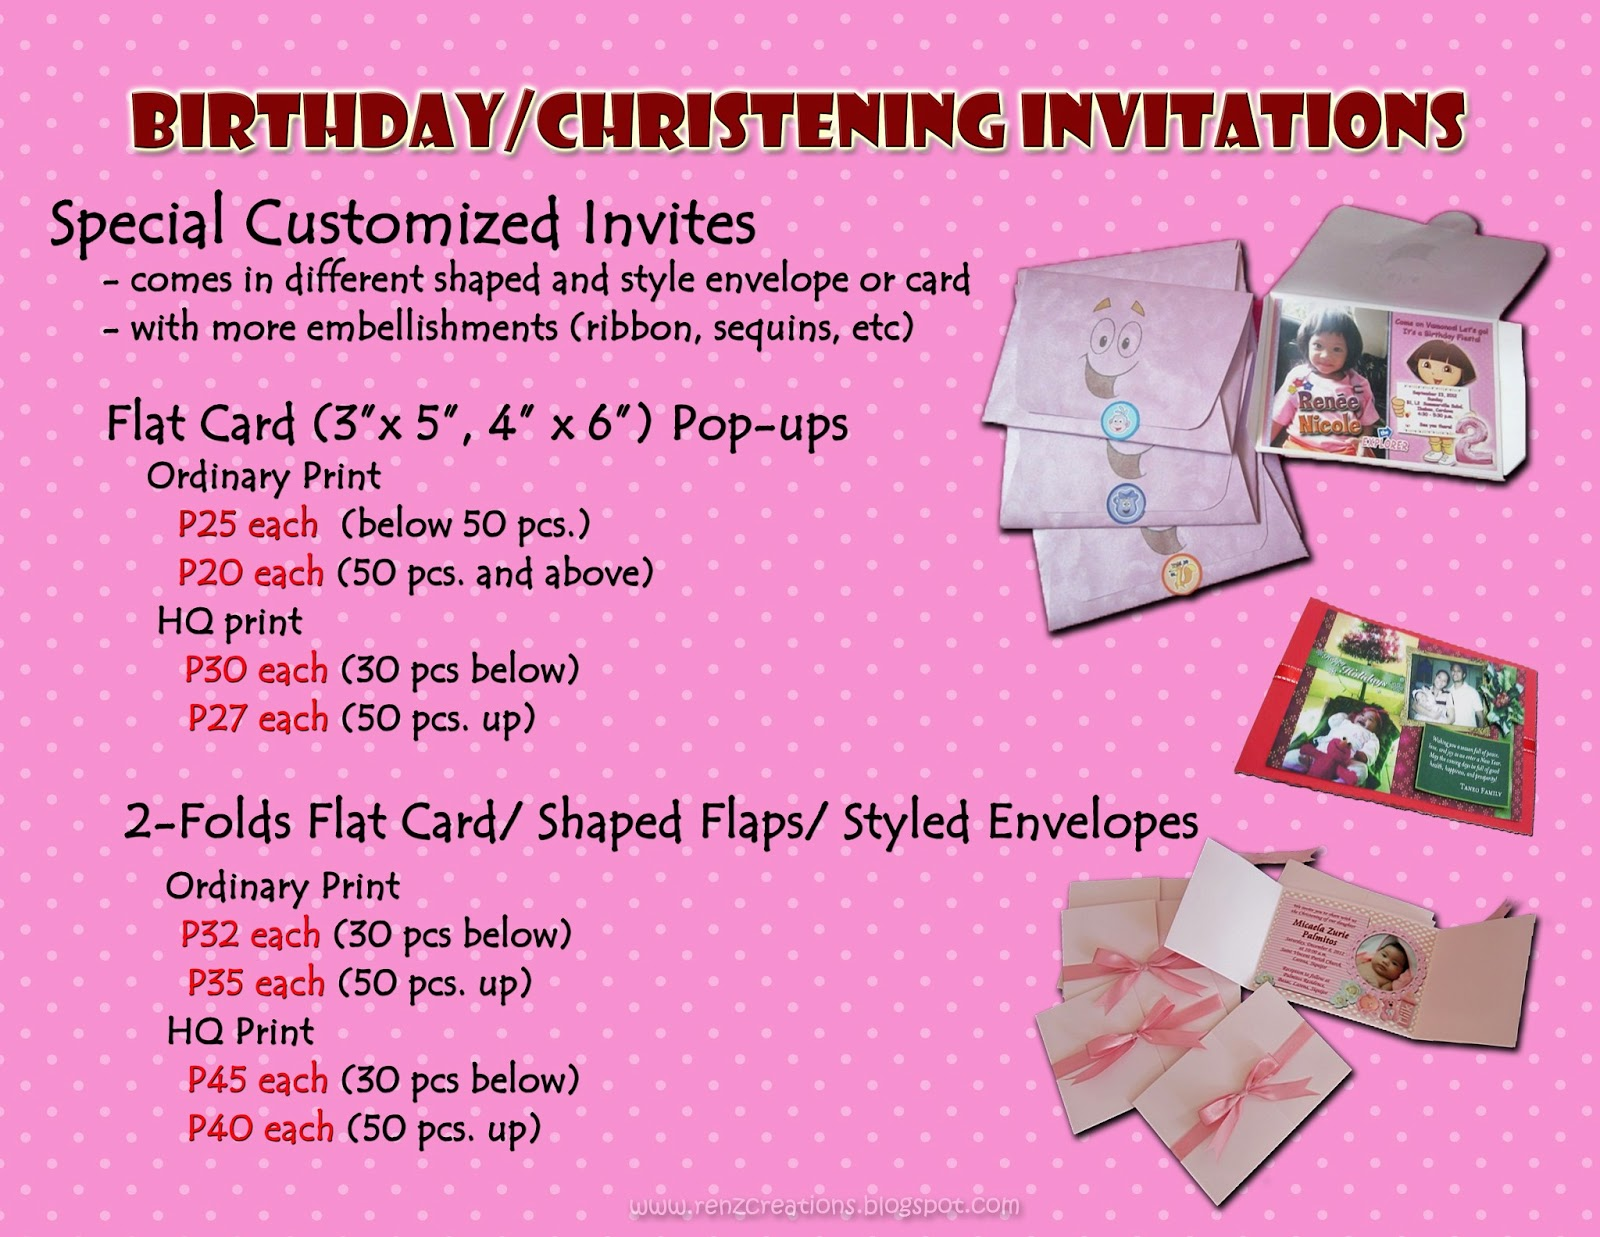 Wedding Invitation Pricing: Renz Creations: Invitations And Giveaways: Prices